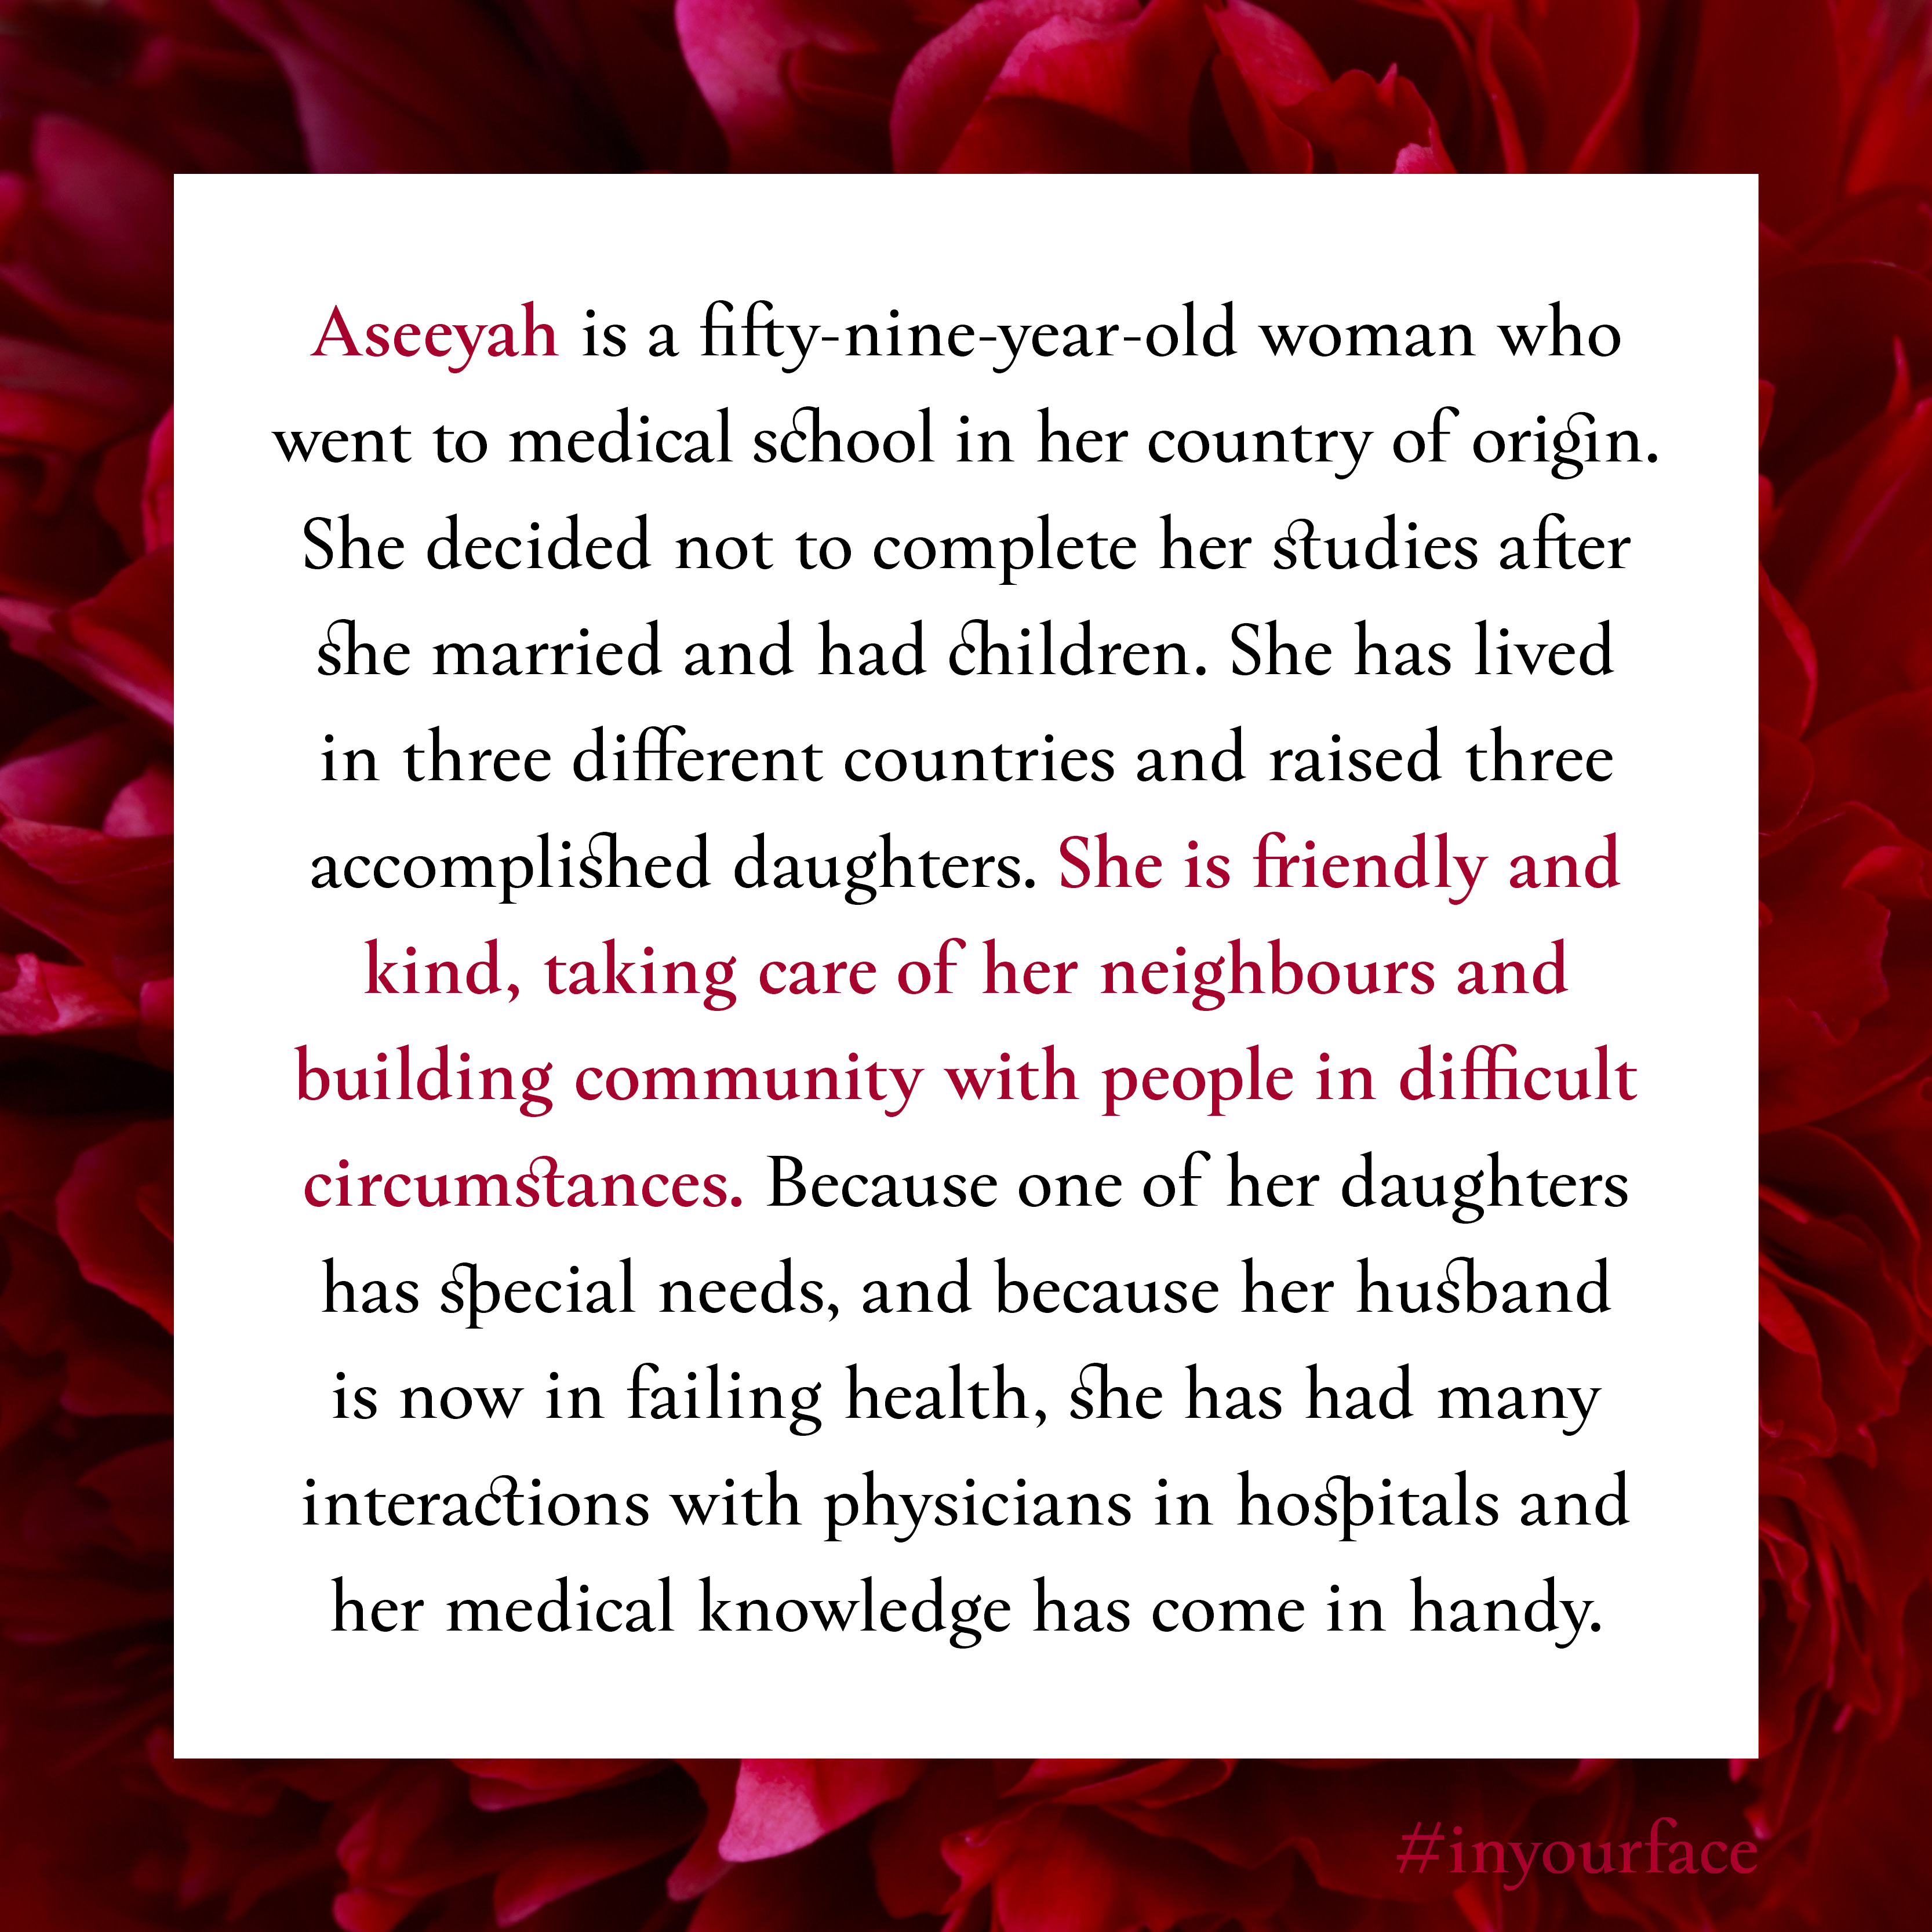 """Excerpt from In Your Face by Natasha Bakht. It reads: """"Aseeyah is a fifty-nine-year-old woman who went to medical school in her country of origin. She decided not to complete her studies after she married and had children. She has lived in three different countries and raised three accomplished daughters. She is friendly and kind, taking care of her neighbours and building community with people in difficult circumstances. Because one of her daughters has special needs, and because her husband is now in failing health, she has had many interactions with physicians in hospitals and her medical knowledge has come in handy."""""""